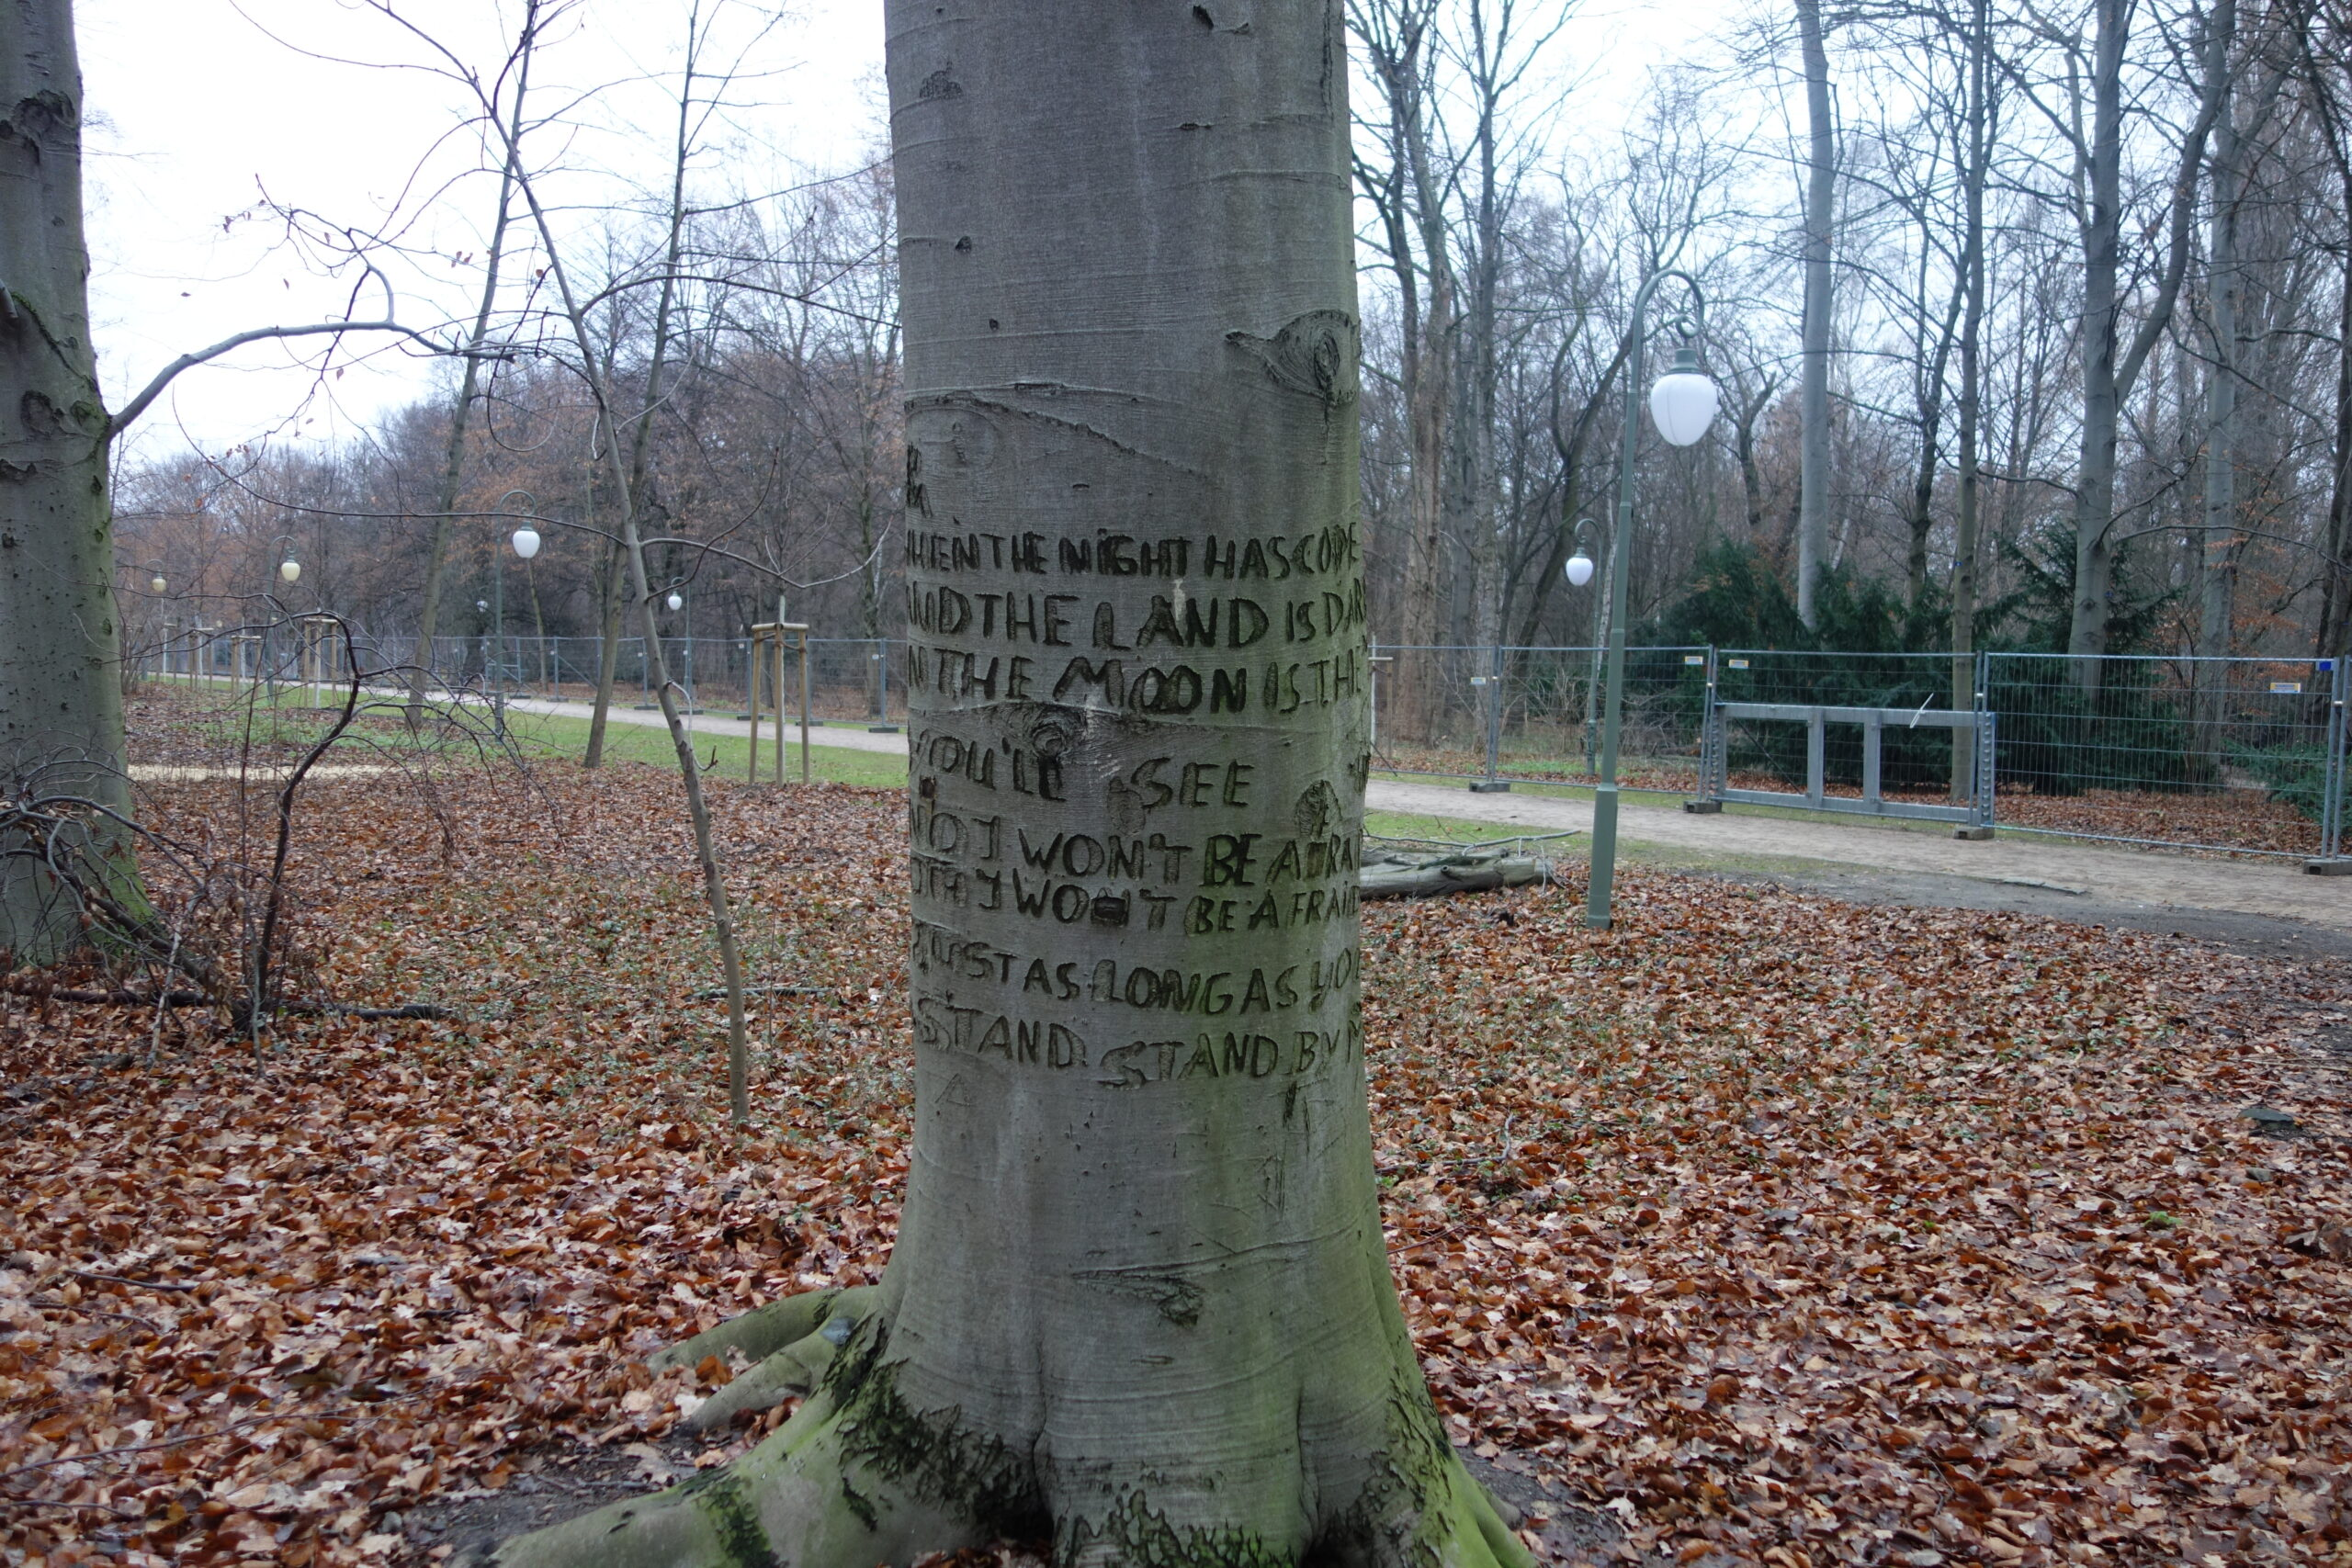 stand by me tree berlin